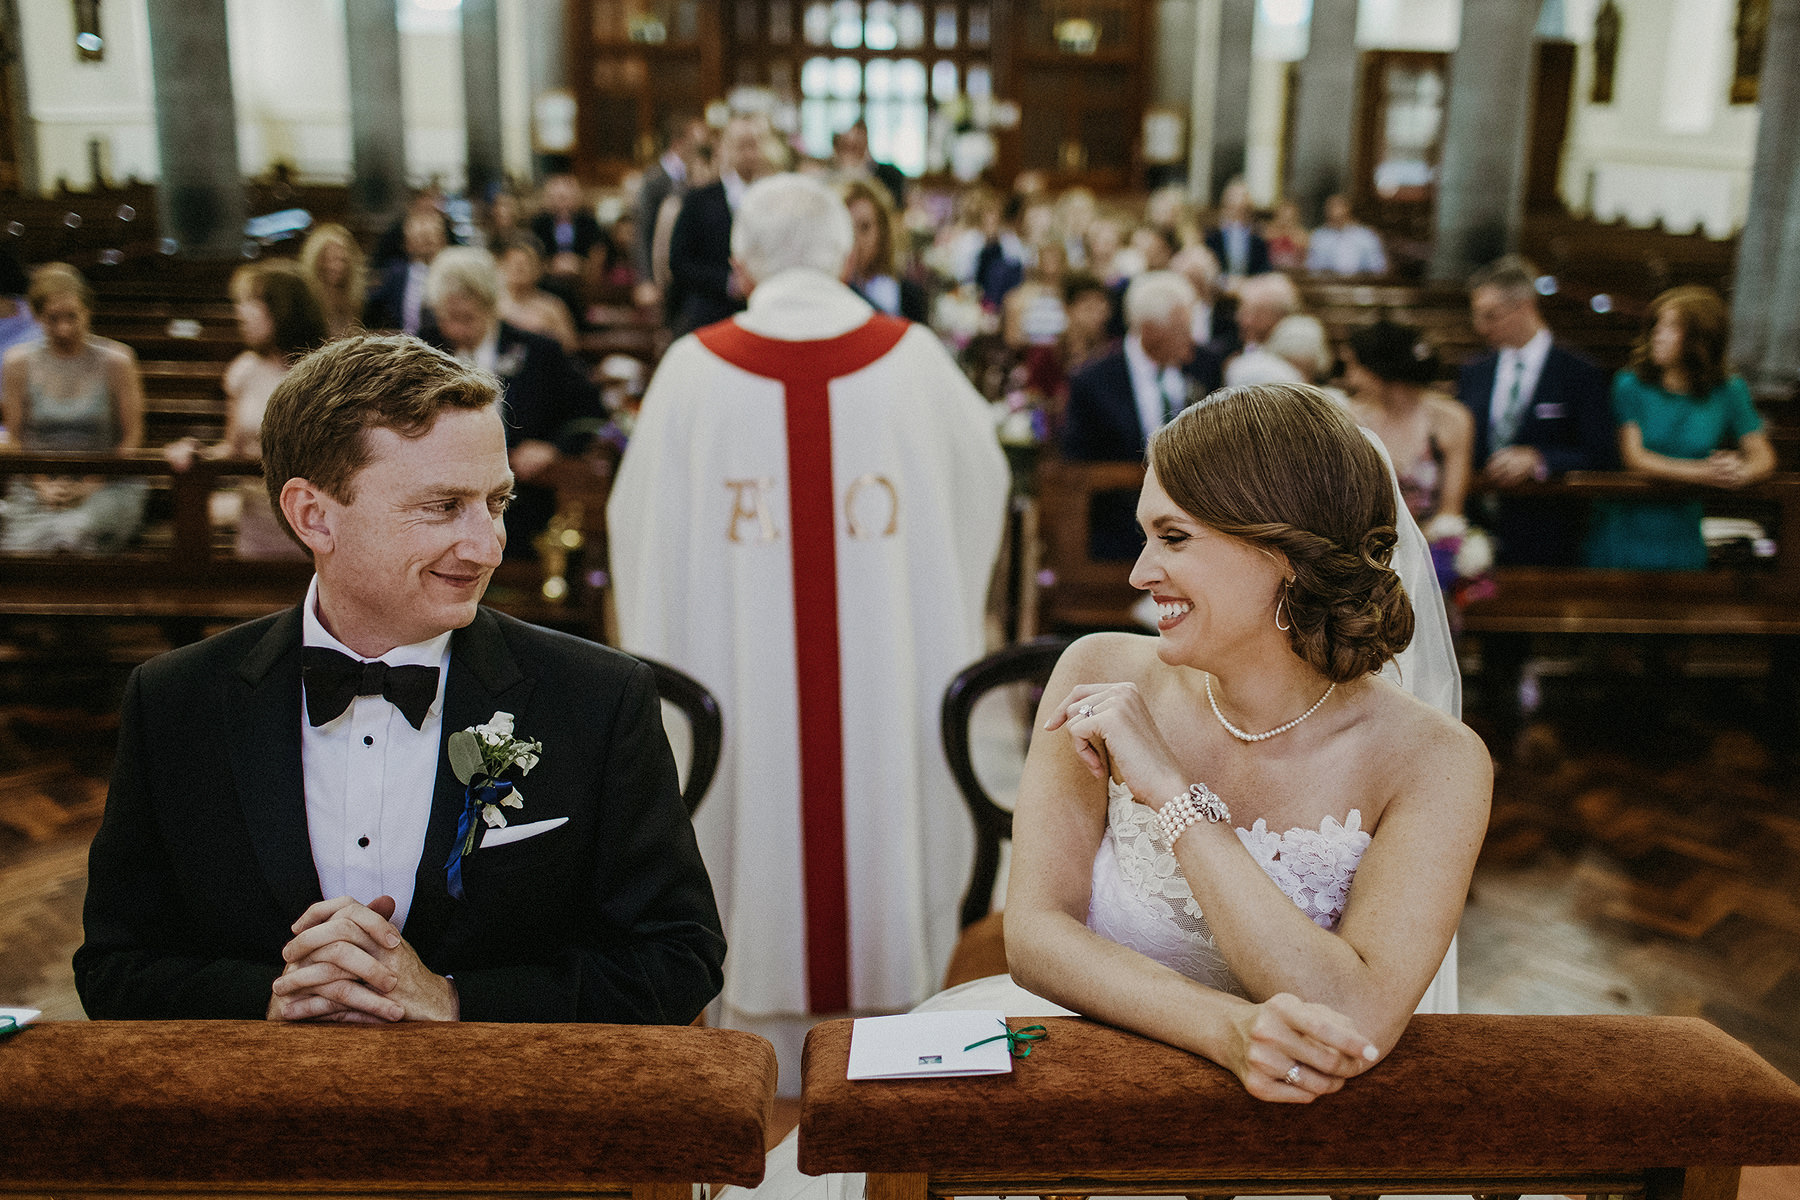 joyful moment after vows bride is smiling at groom mount juliet small intimate wedding